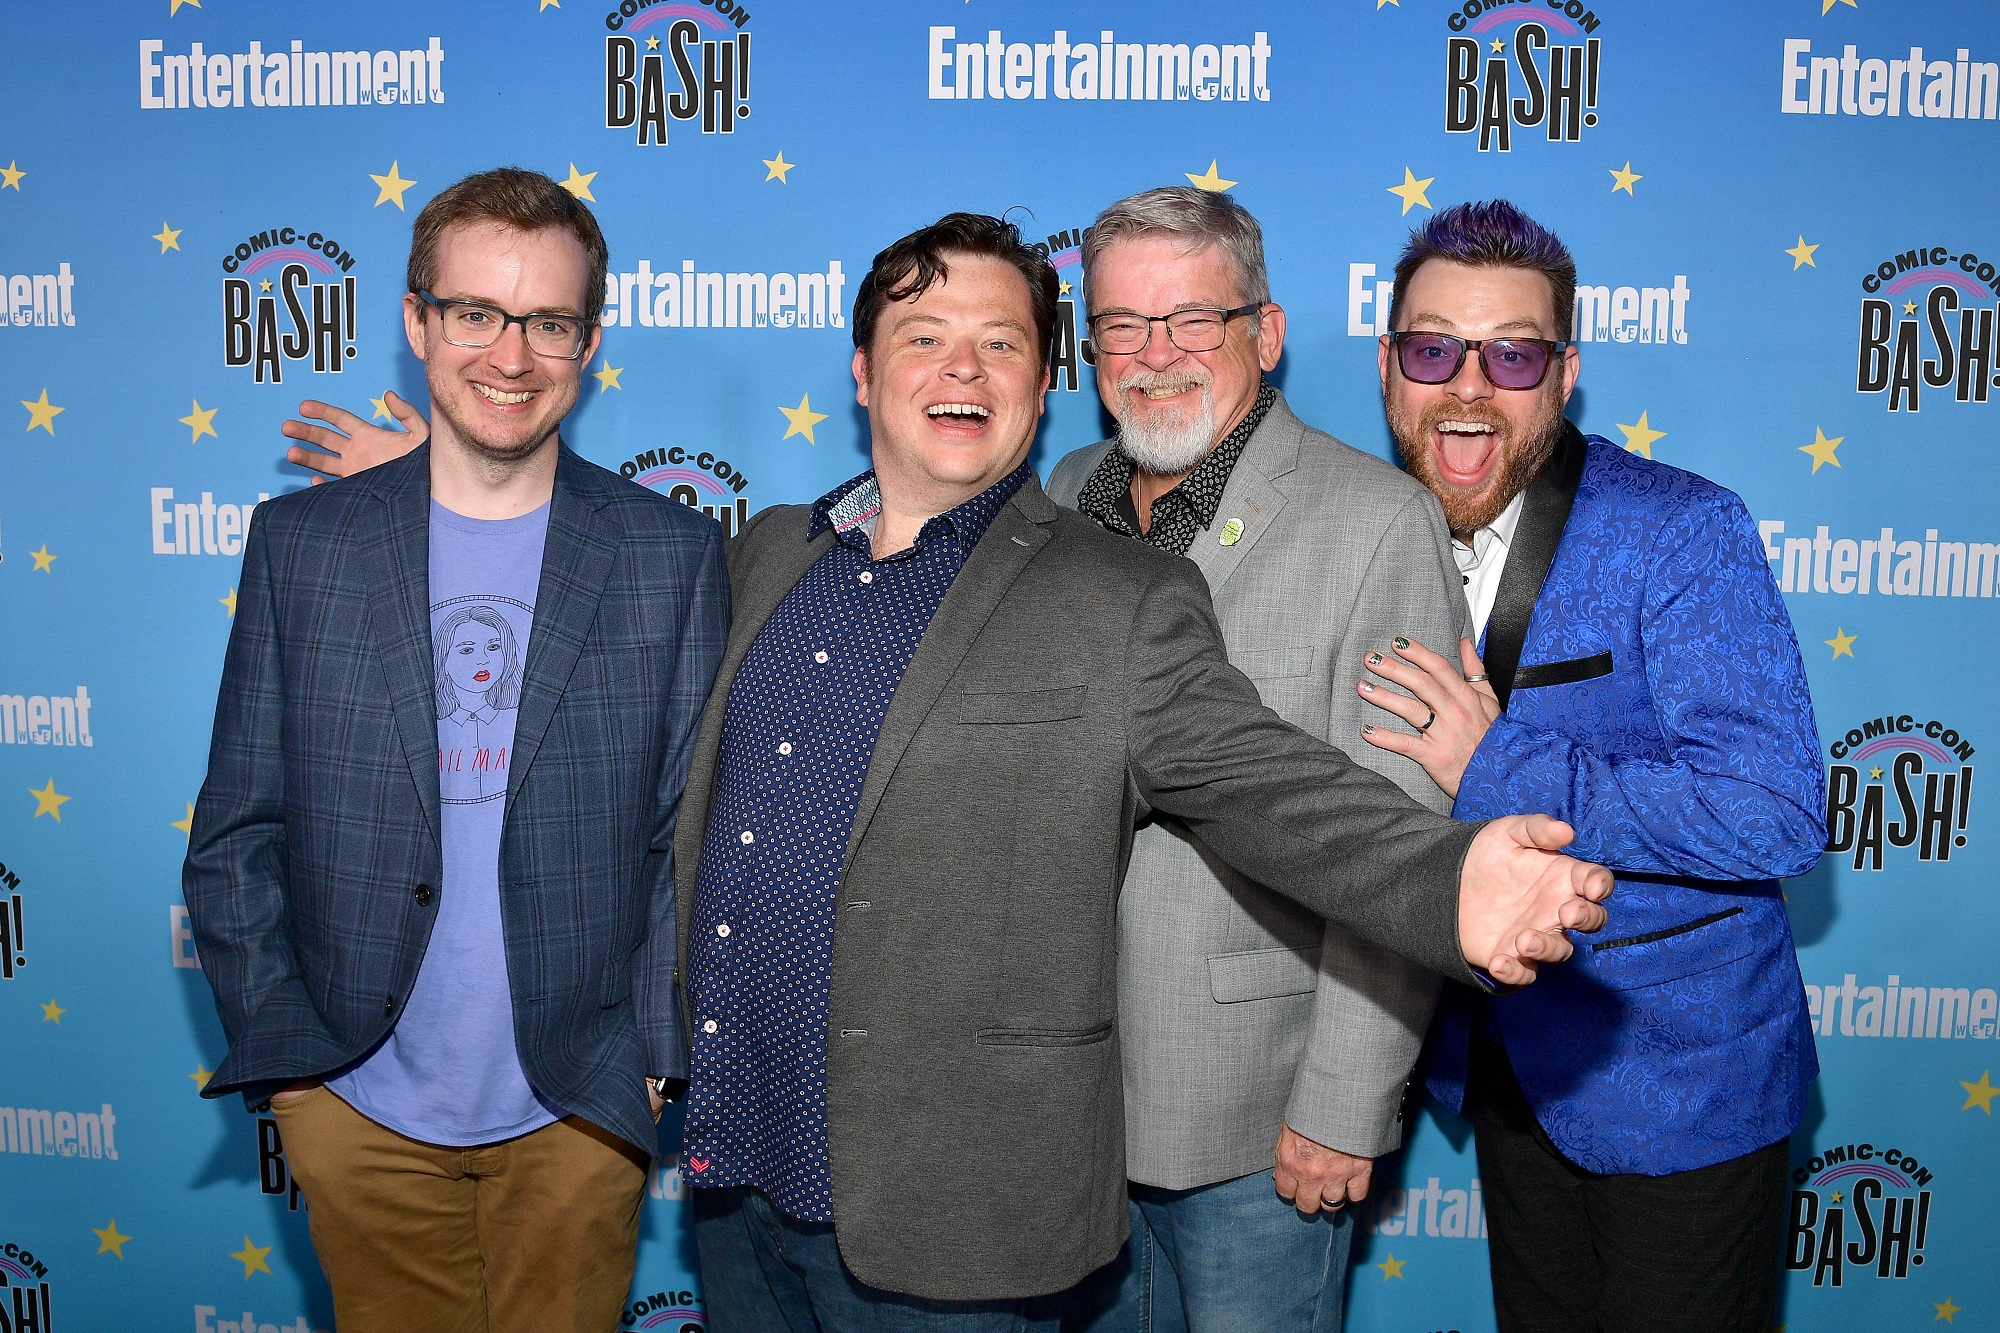 Griffin McElroy, Justin McElroy, Clint McElroy, and Travis McElroy of My Brother, My Brother and Me